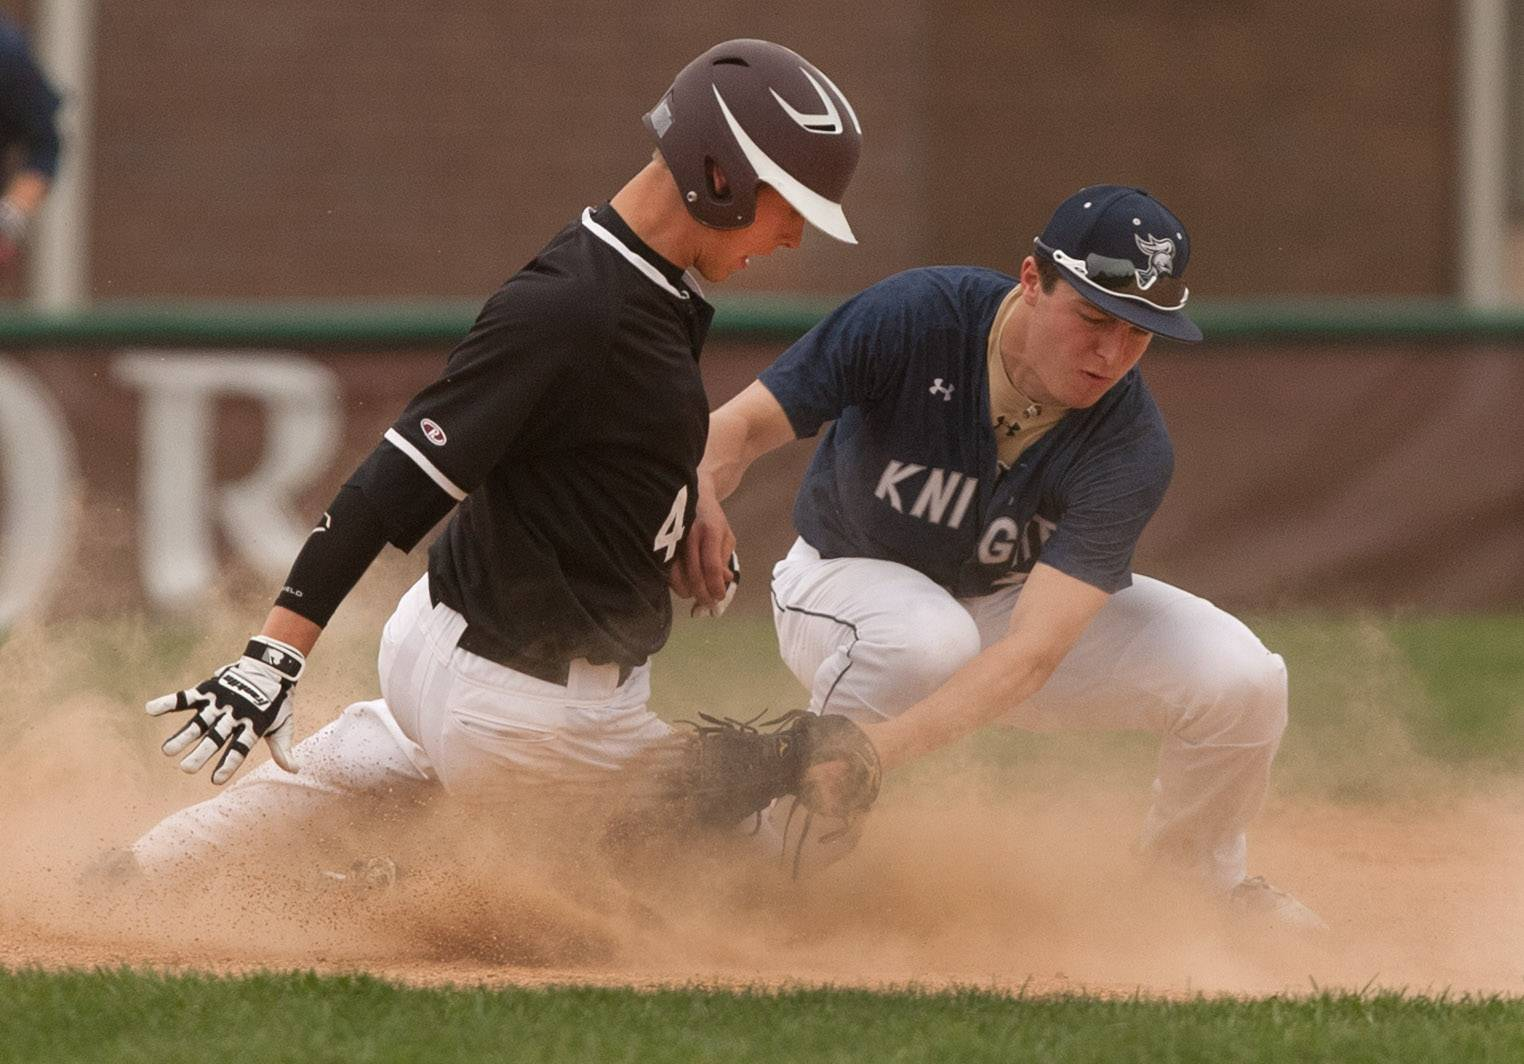 Wheaton Academy's Brett Albaugh slides safely into second base under the tag of IC Catholic Prep's Sean Sutton during baseball action in West Chicago.